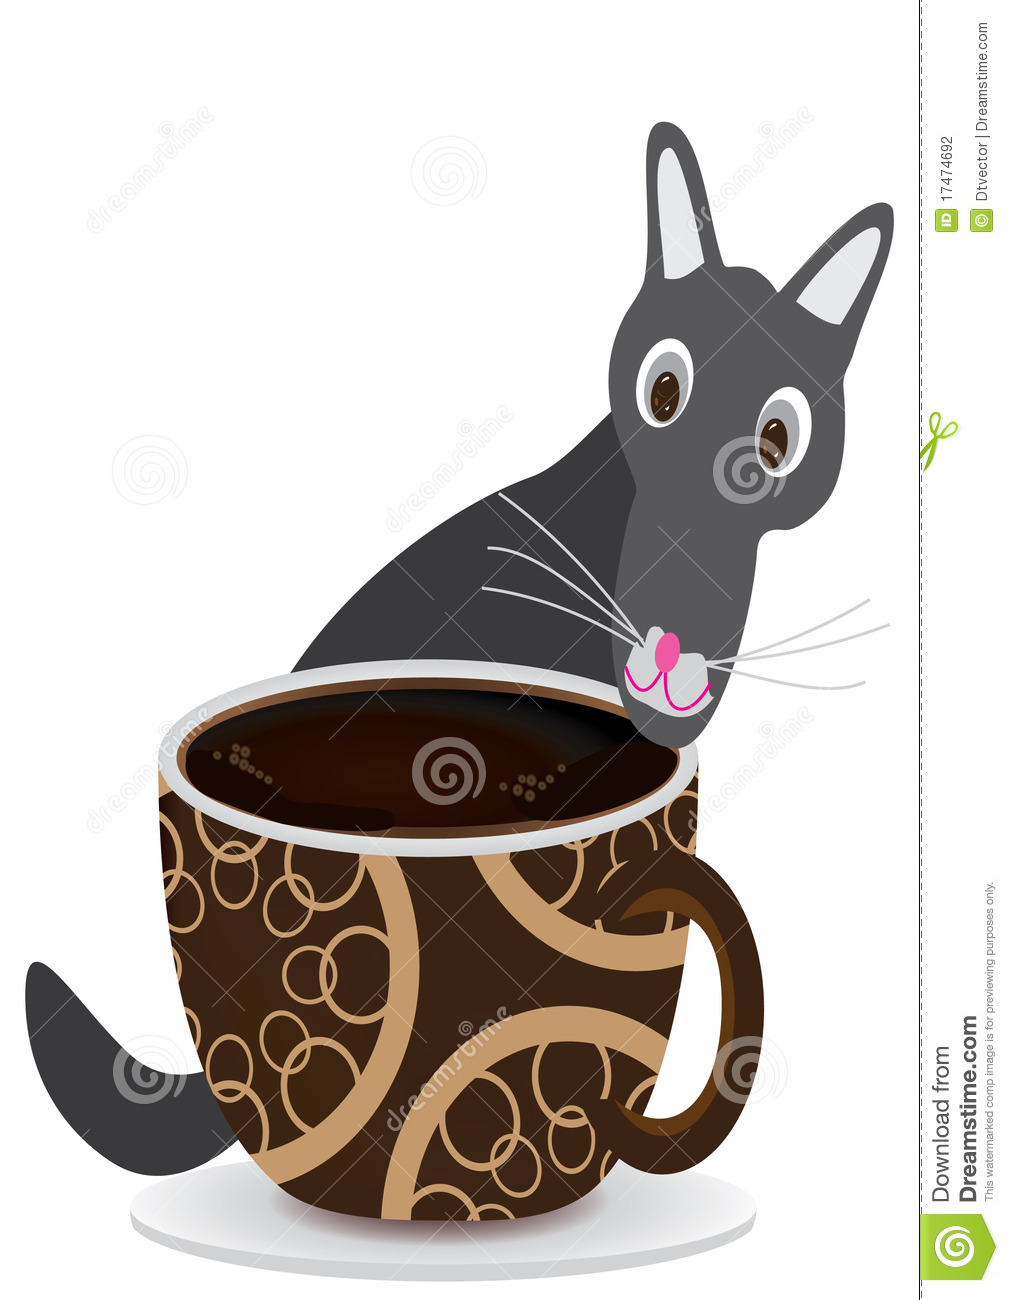 civet coffee essay The world's most expensive coffee is kopi luwak, and it is because of its unique method of production this richest coffee is produced from a certain indonesian cat-like animal called palm civet or civet cat also.